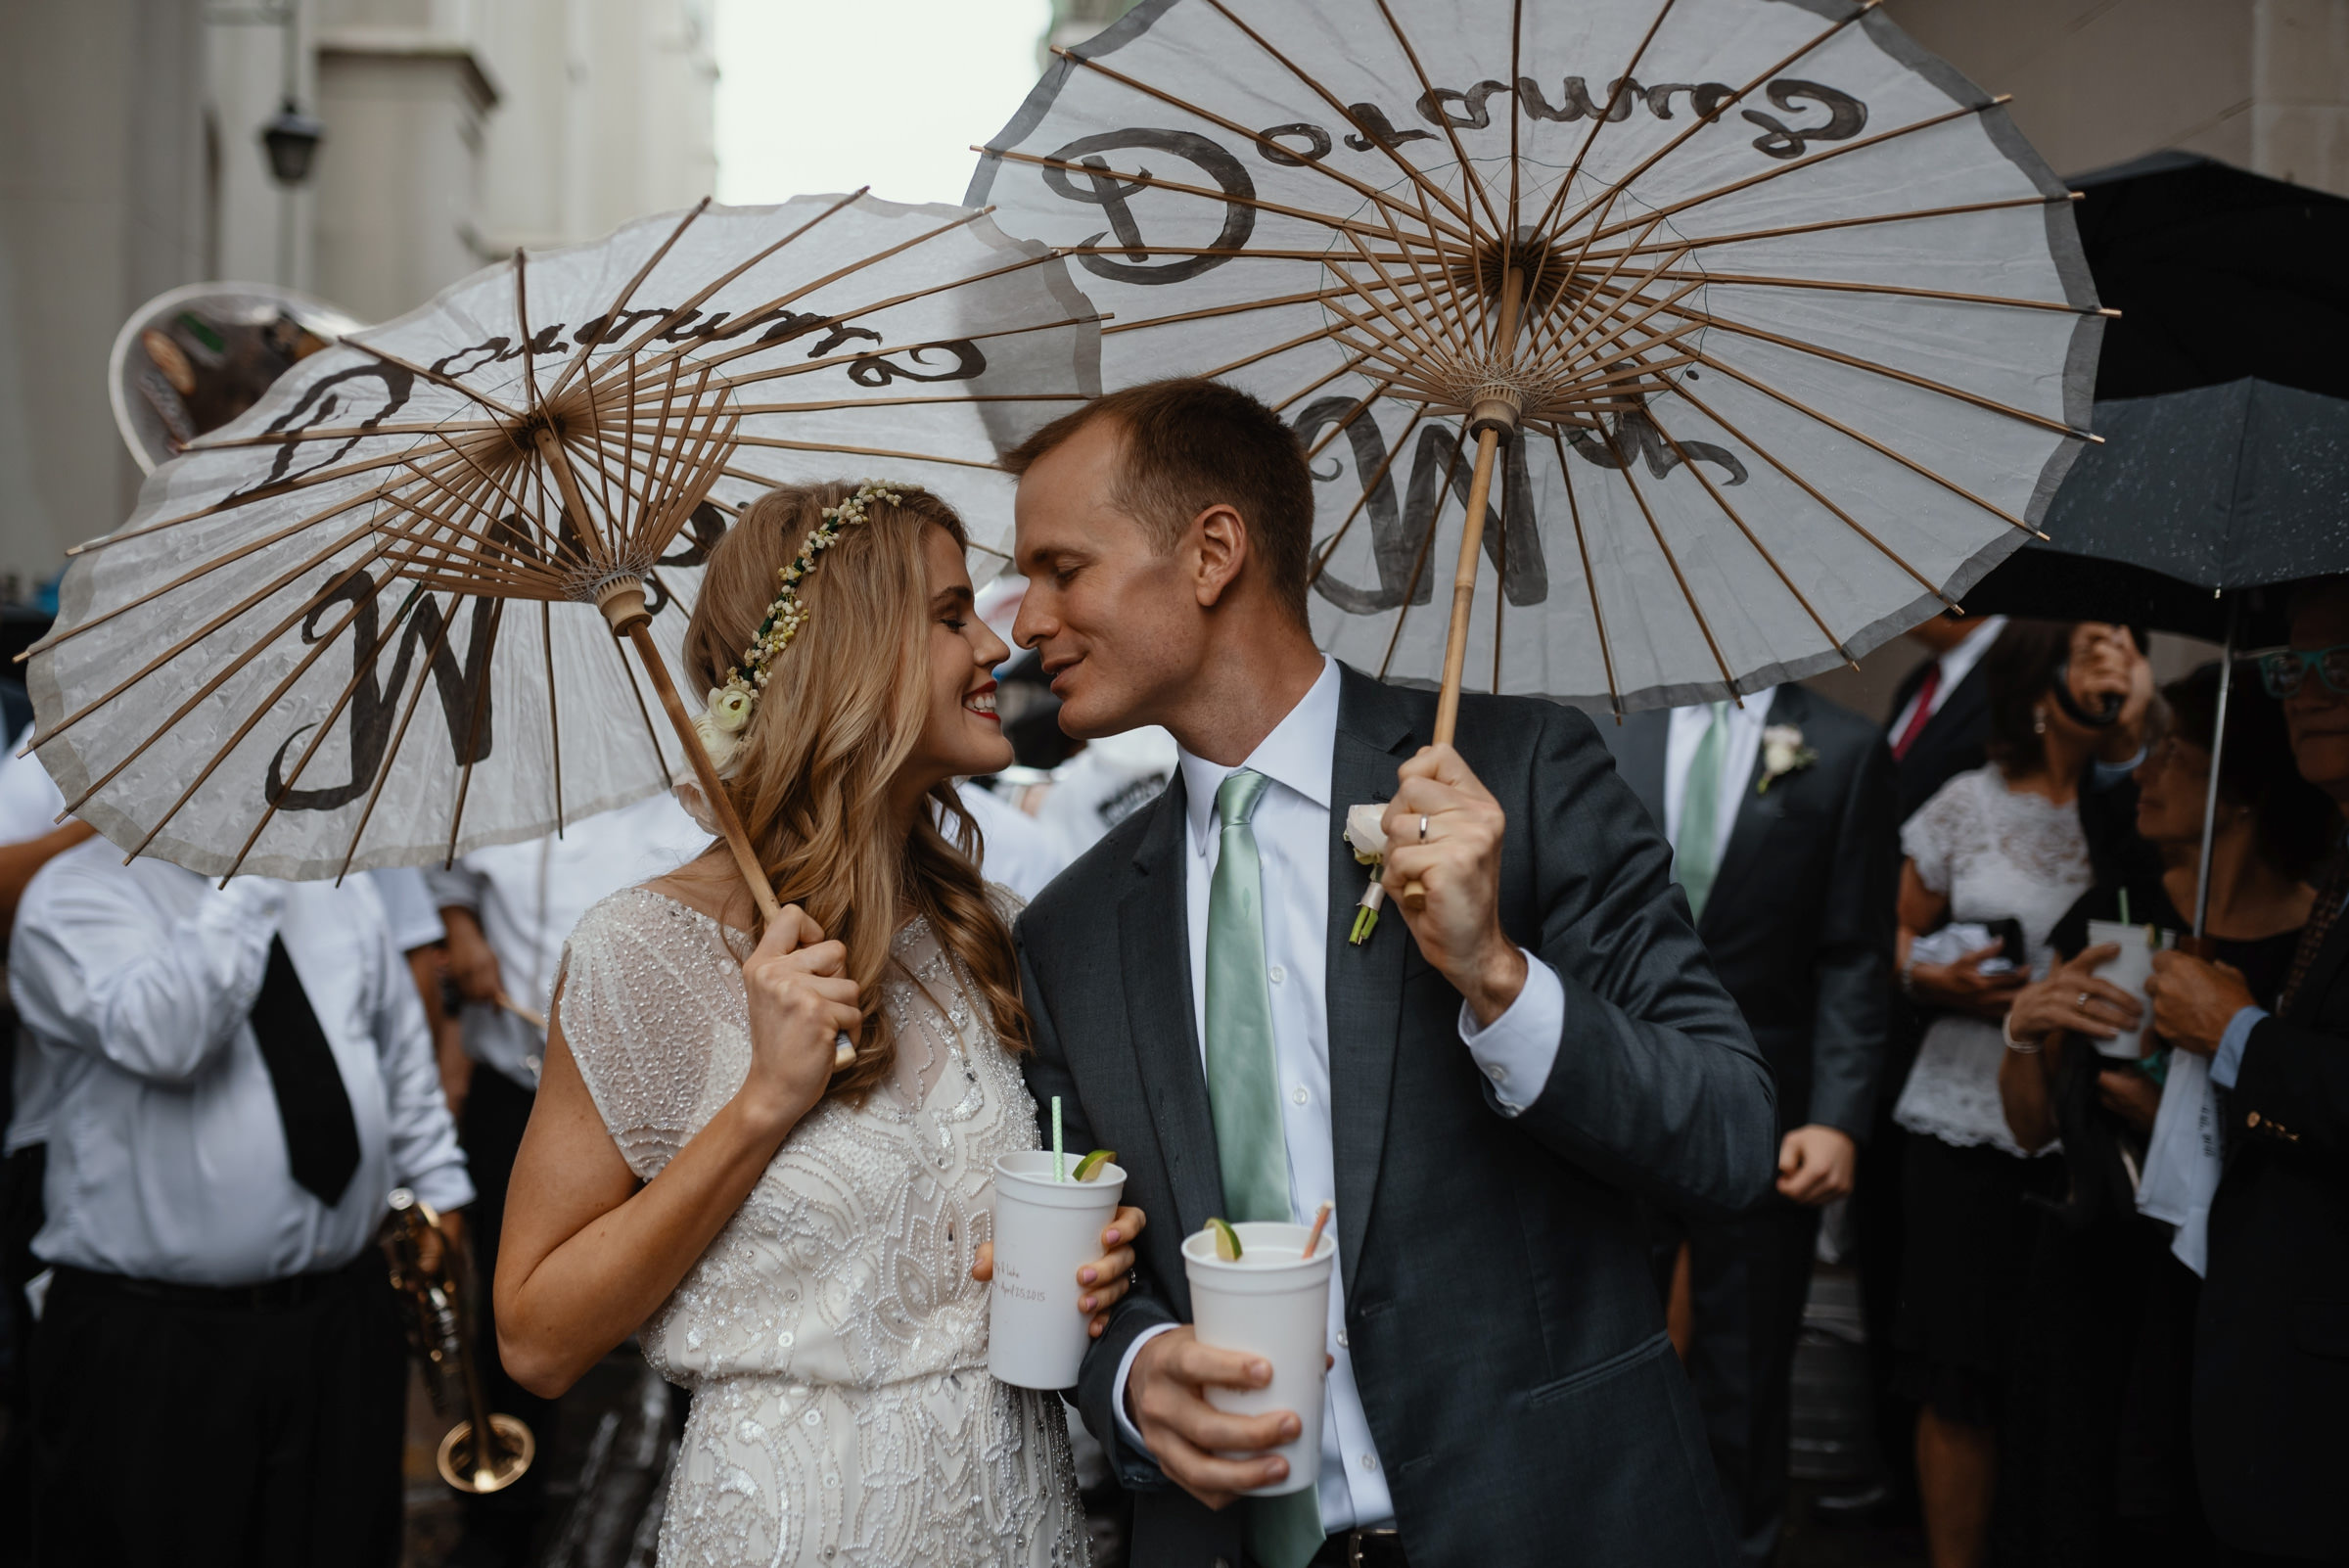 bride and groom almost kissing under their cute umbrellas - photo by Dark Roux